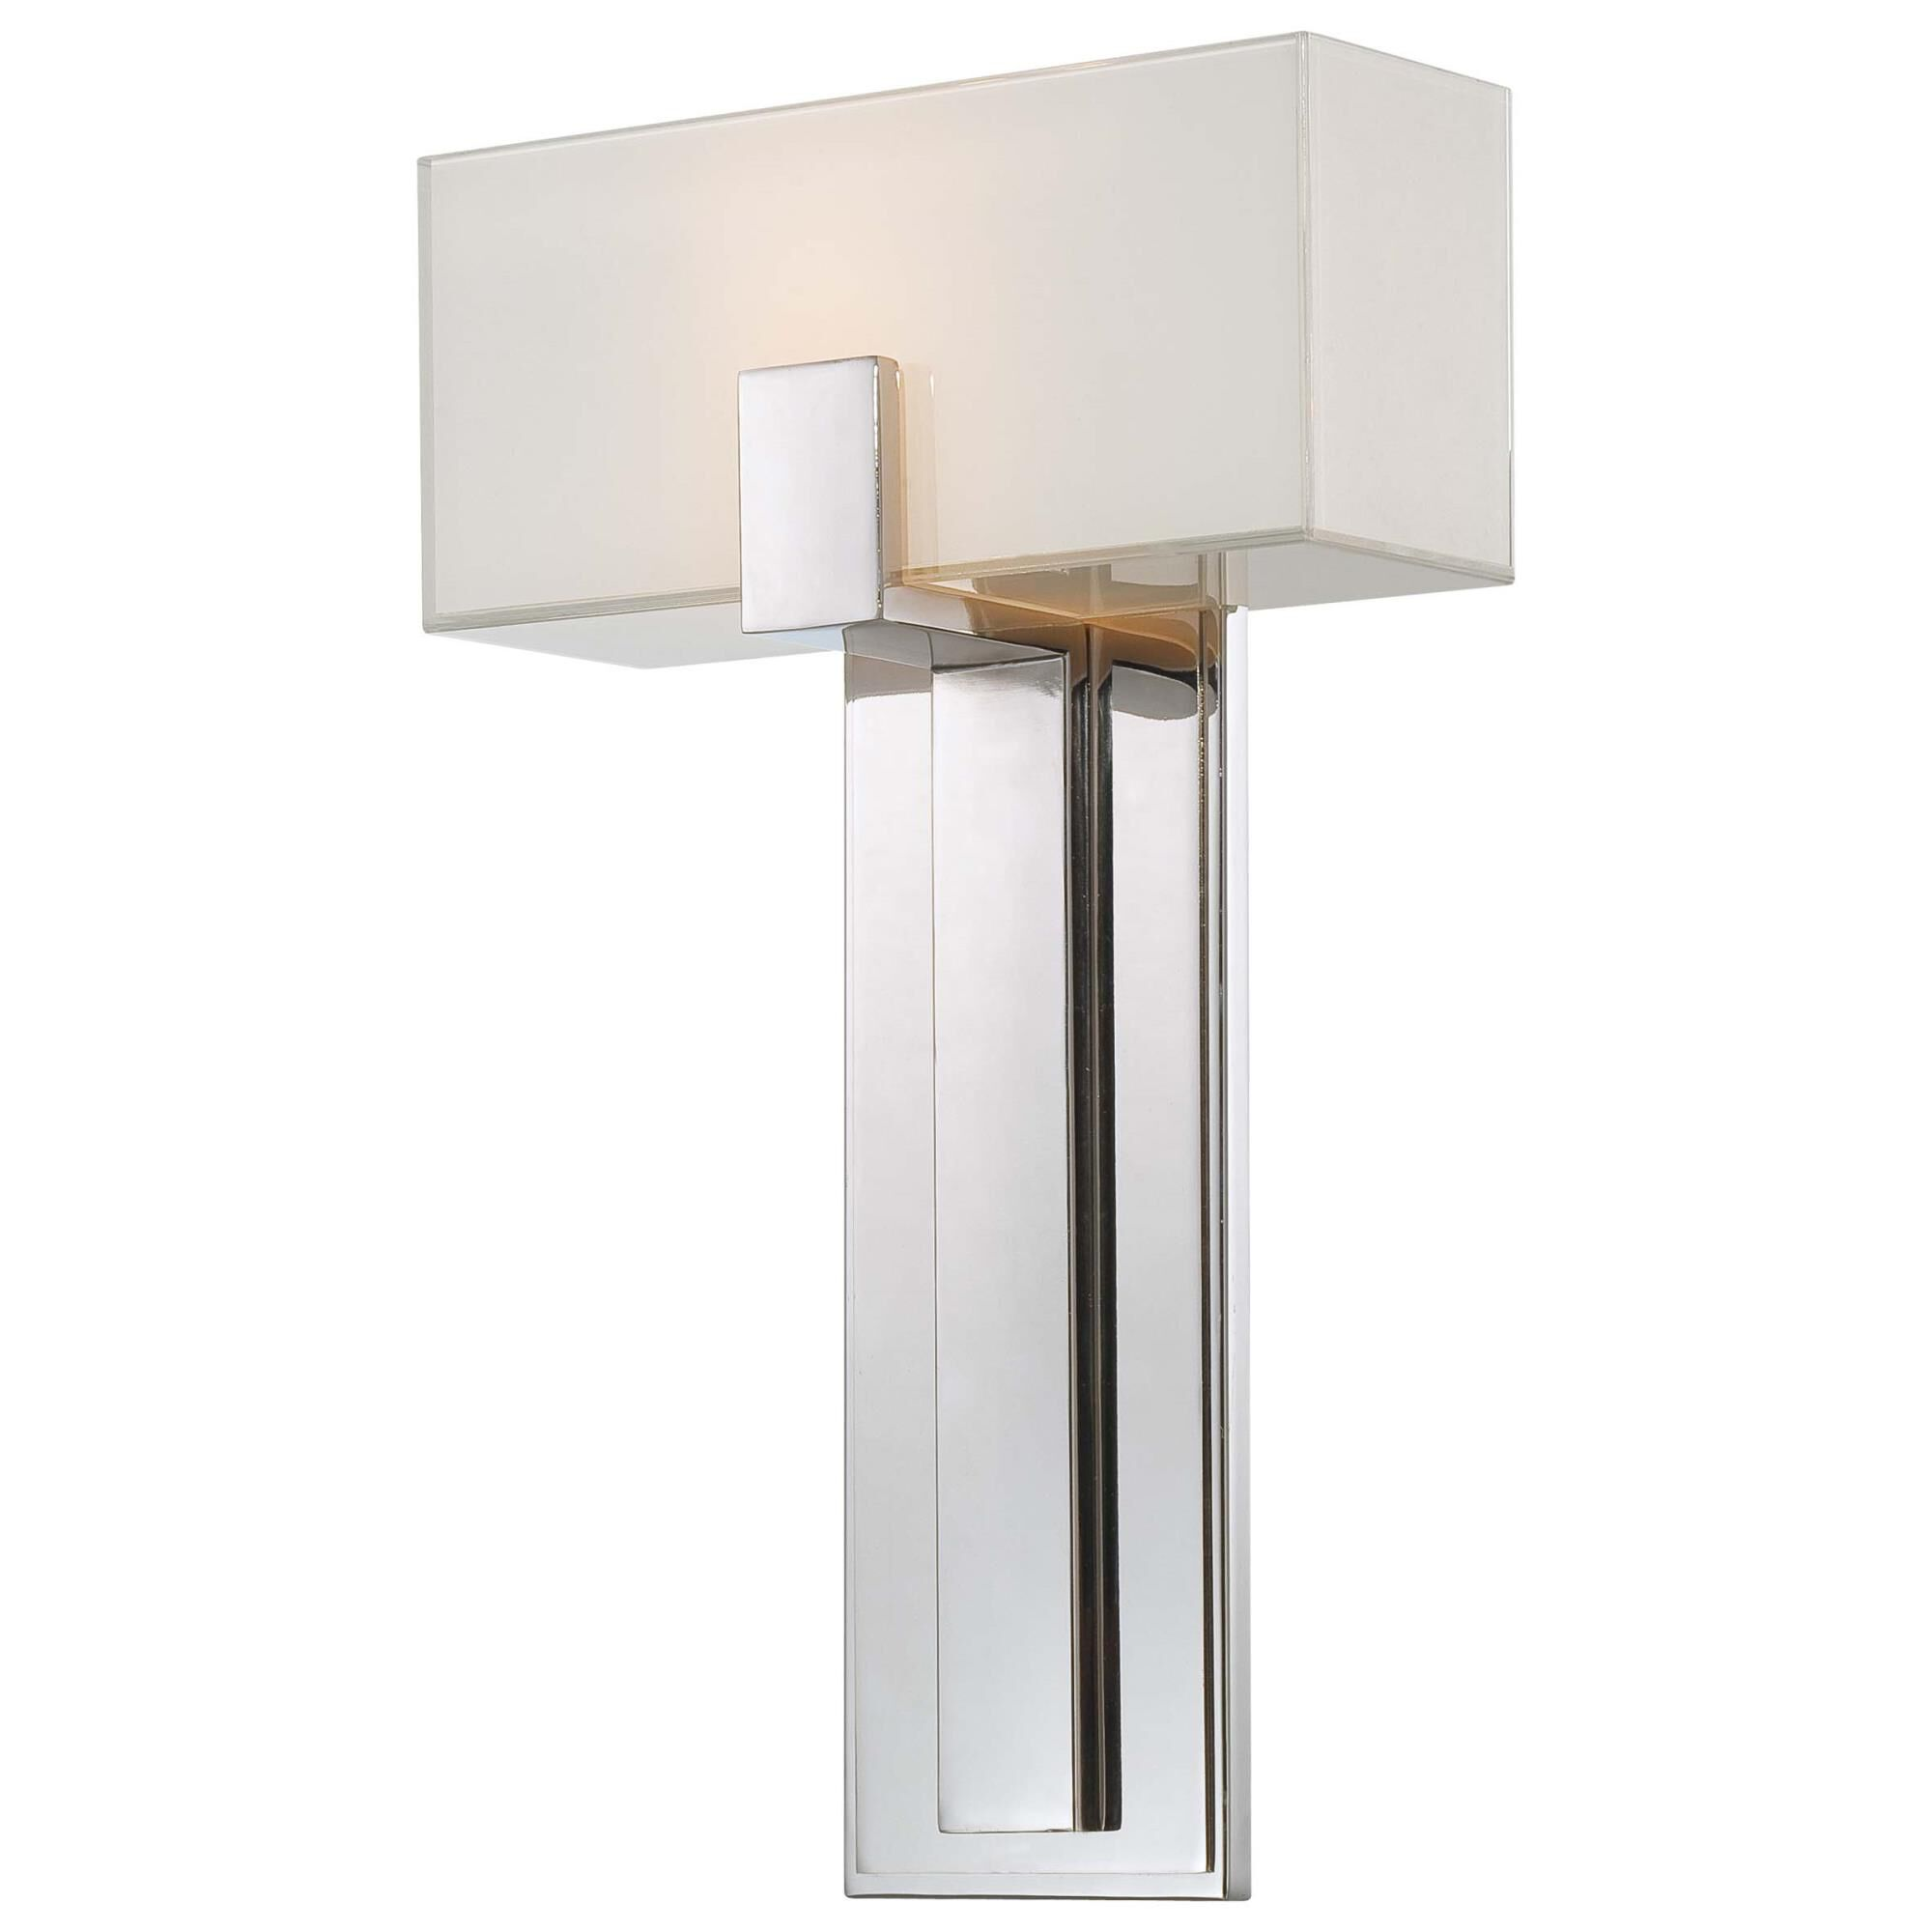 Kovacs 16 Inch Wall Sconce - P1704-613 - Modern Contemporary